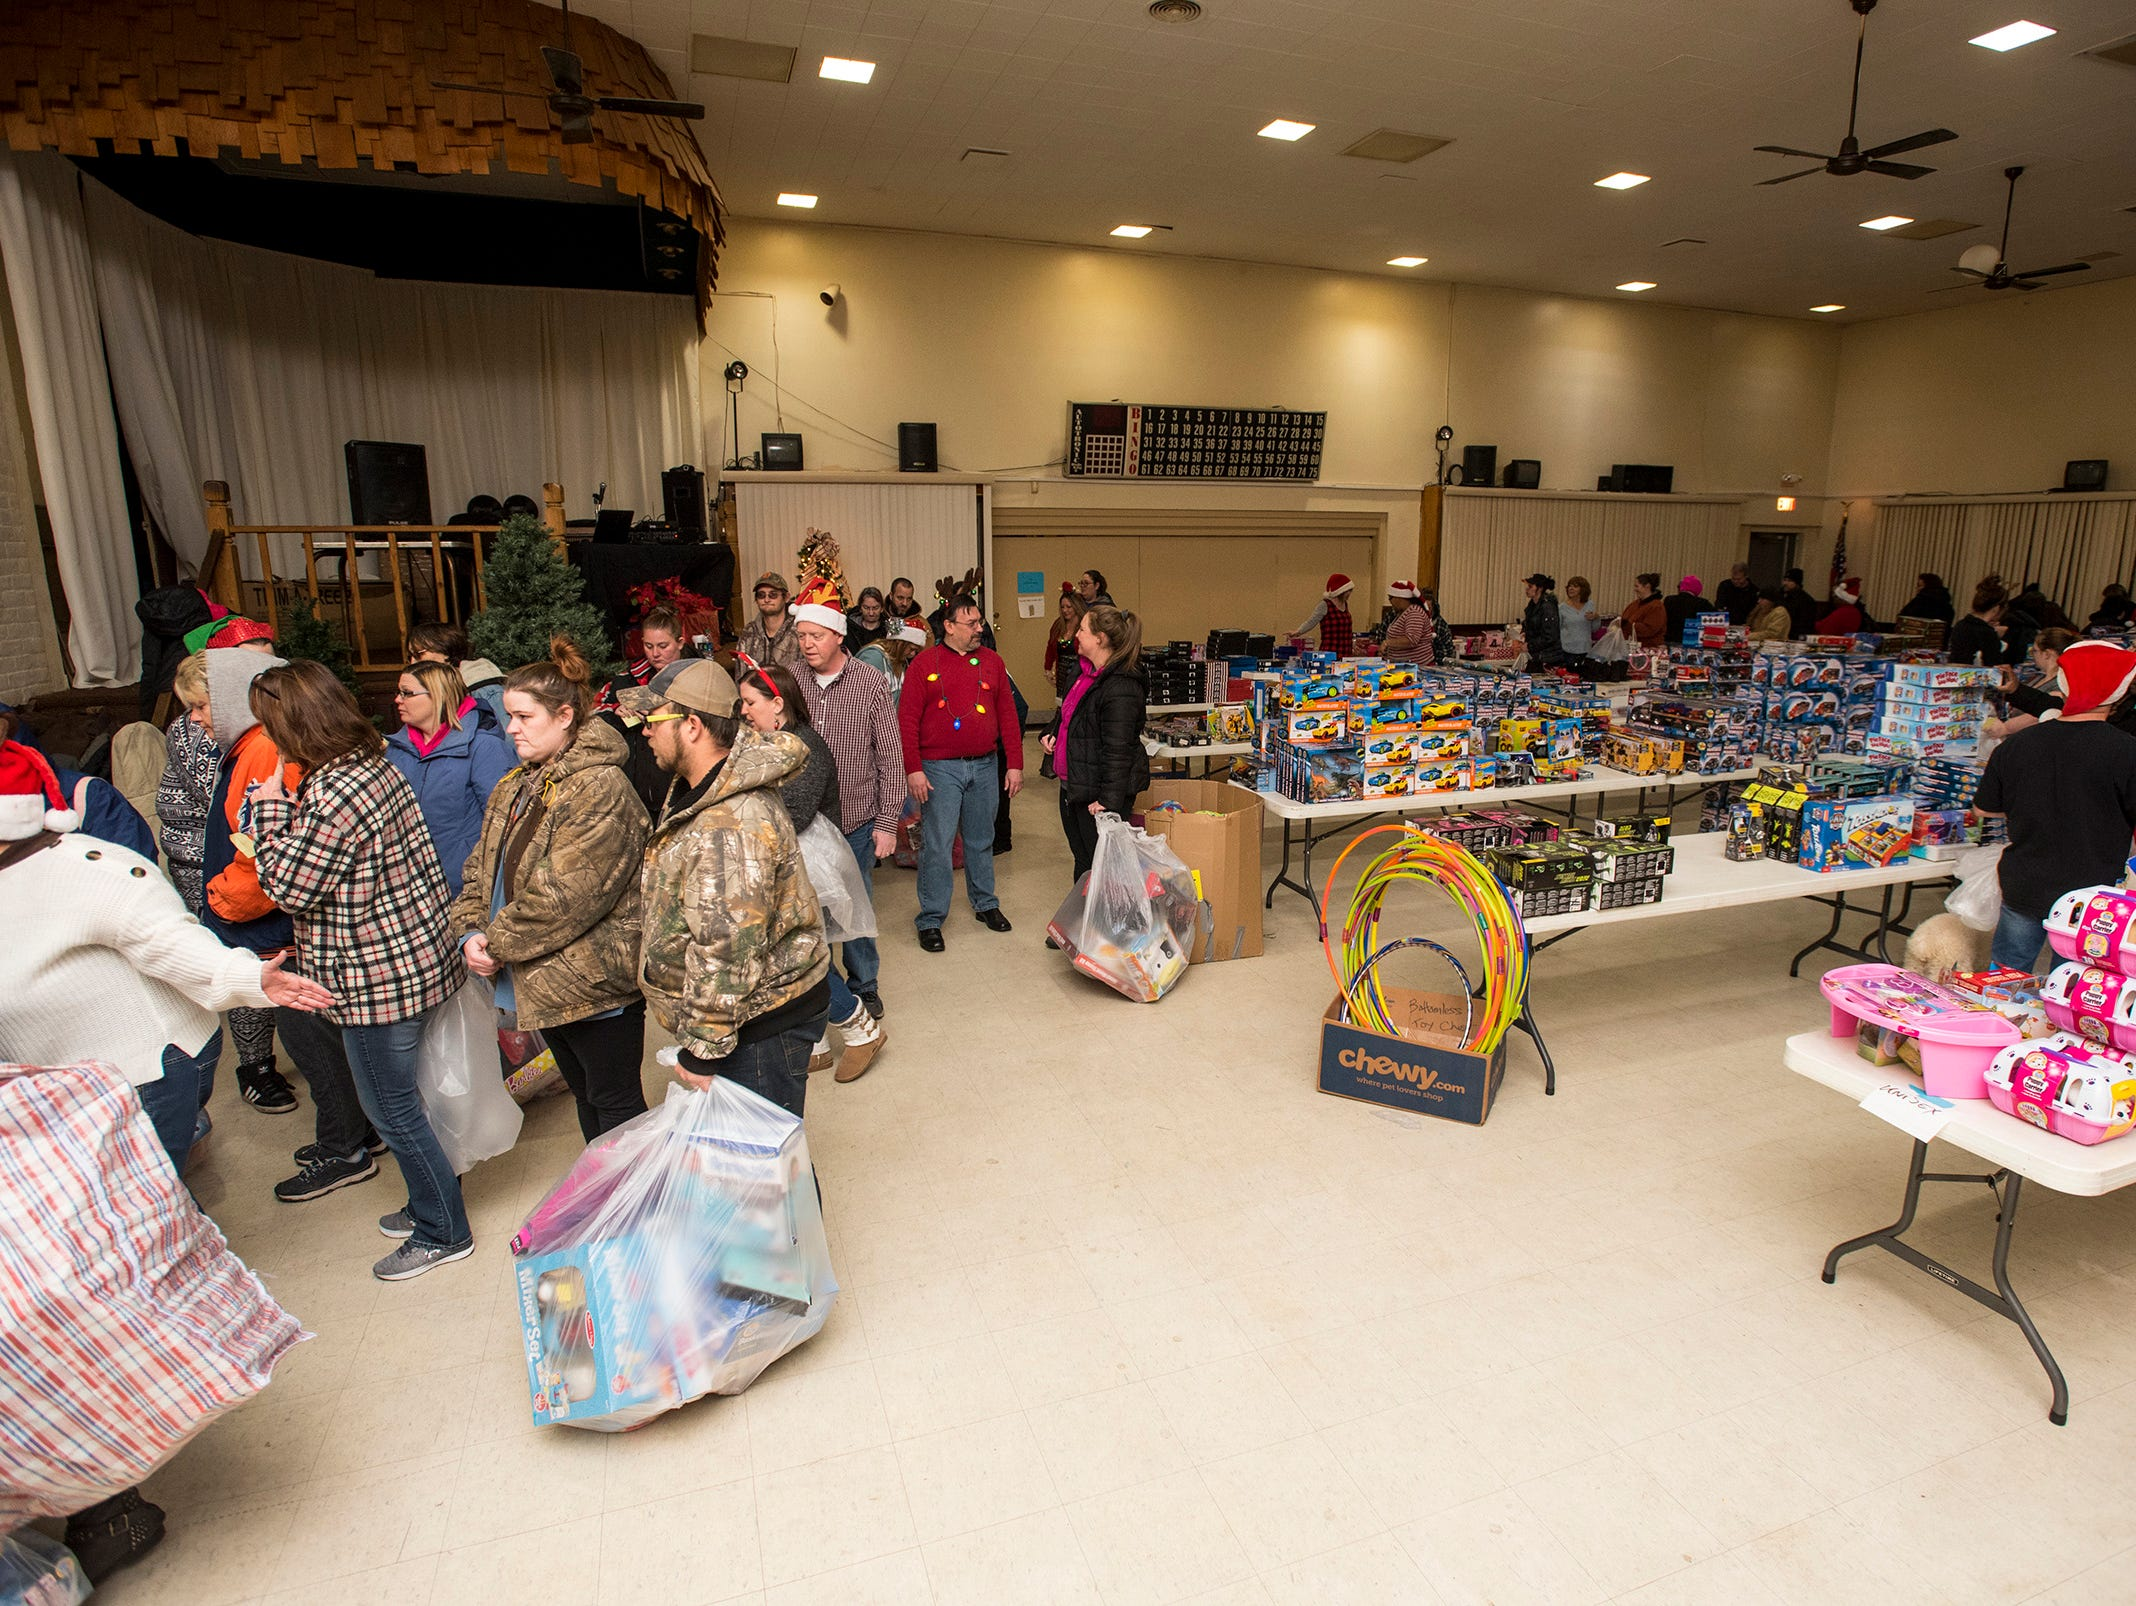 People line up to receive stocking stuffers Wednesday, Dec. 12, 2018 during the annual toy giveaway at the Charles Hammond American Legion Post in Port Huron.